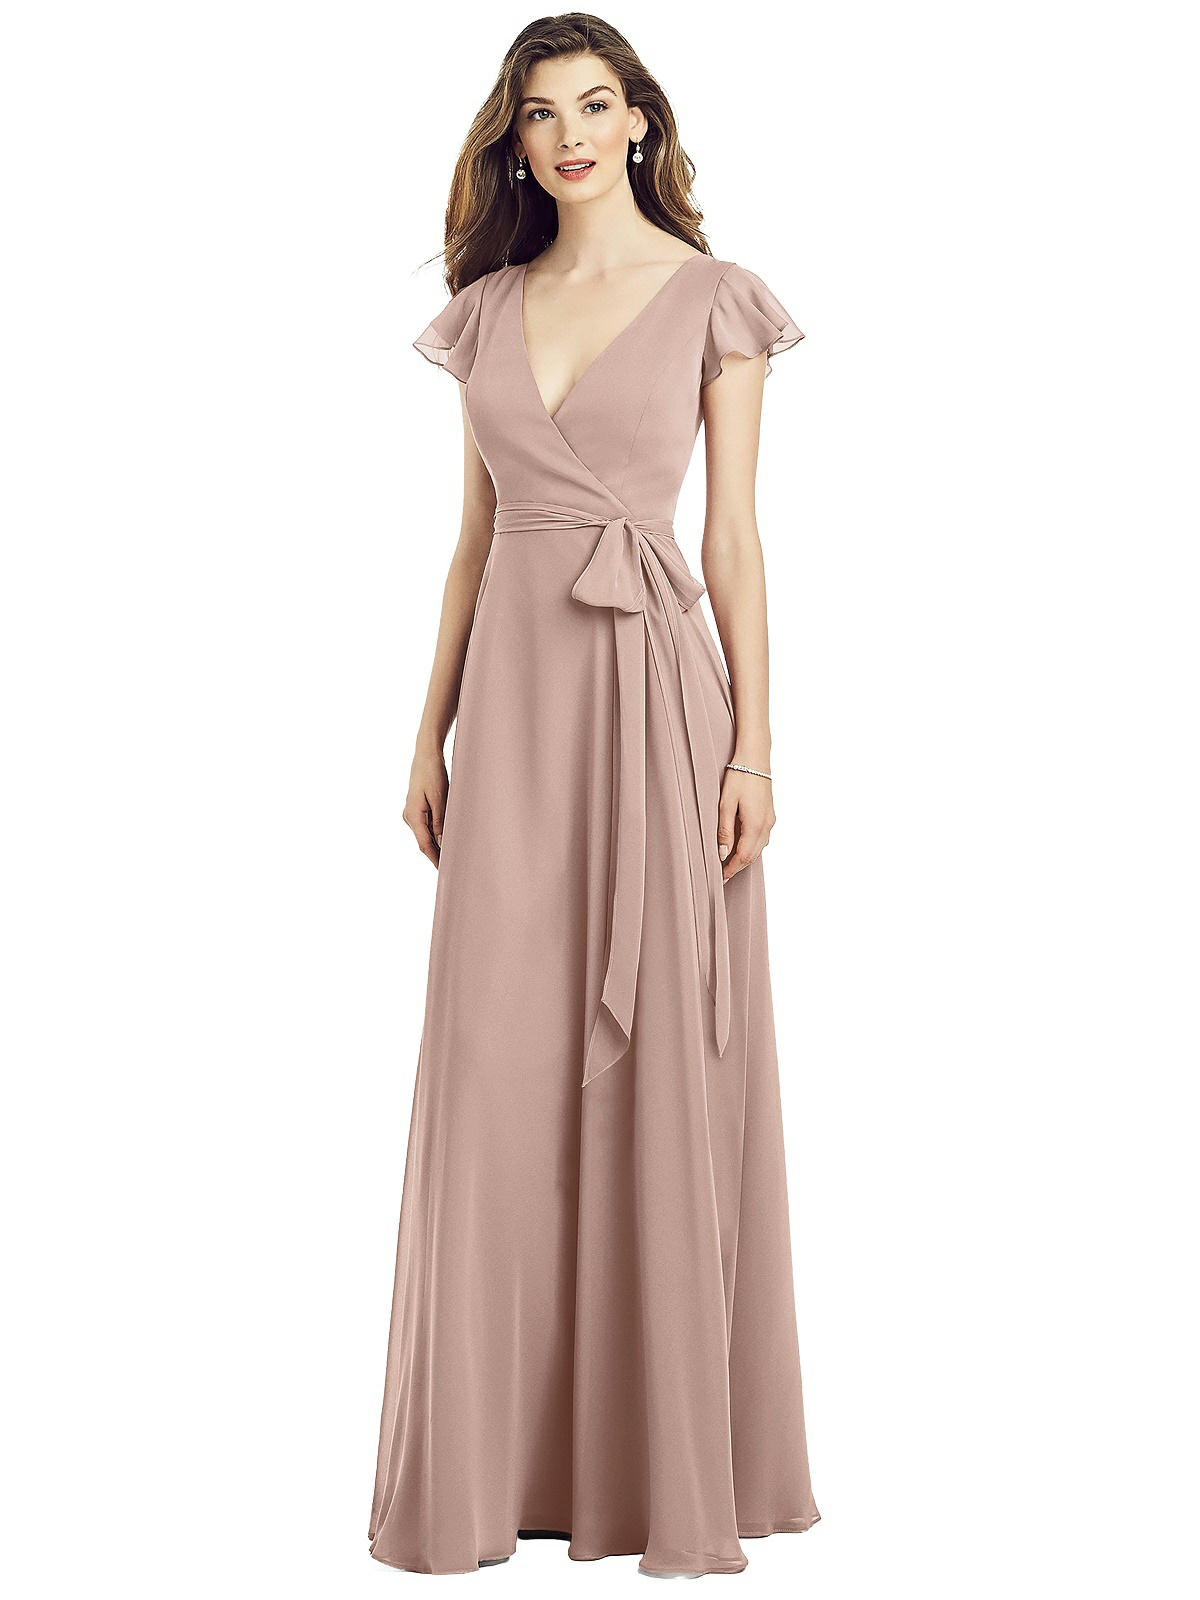 bridesmaid-dresses-dessy-27999